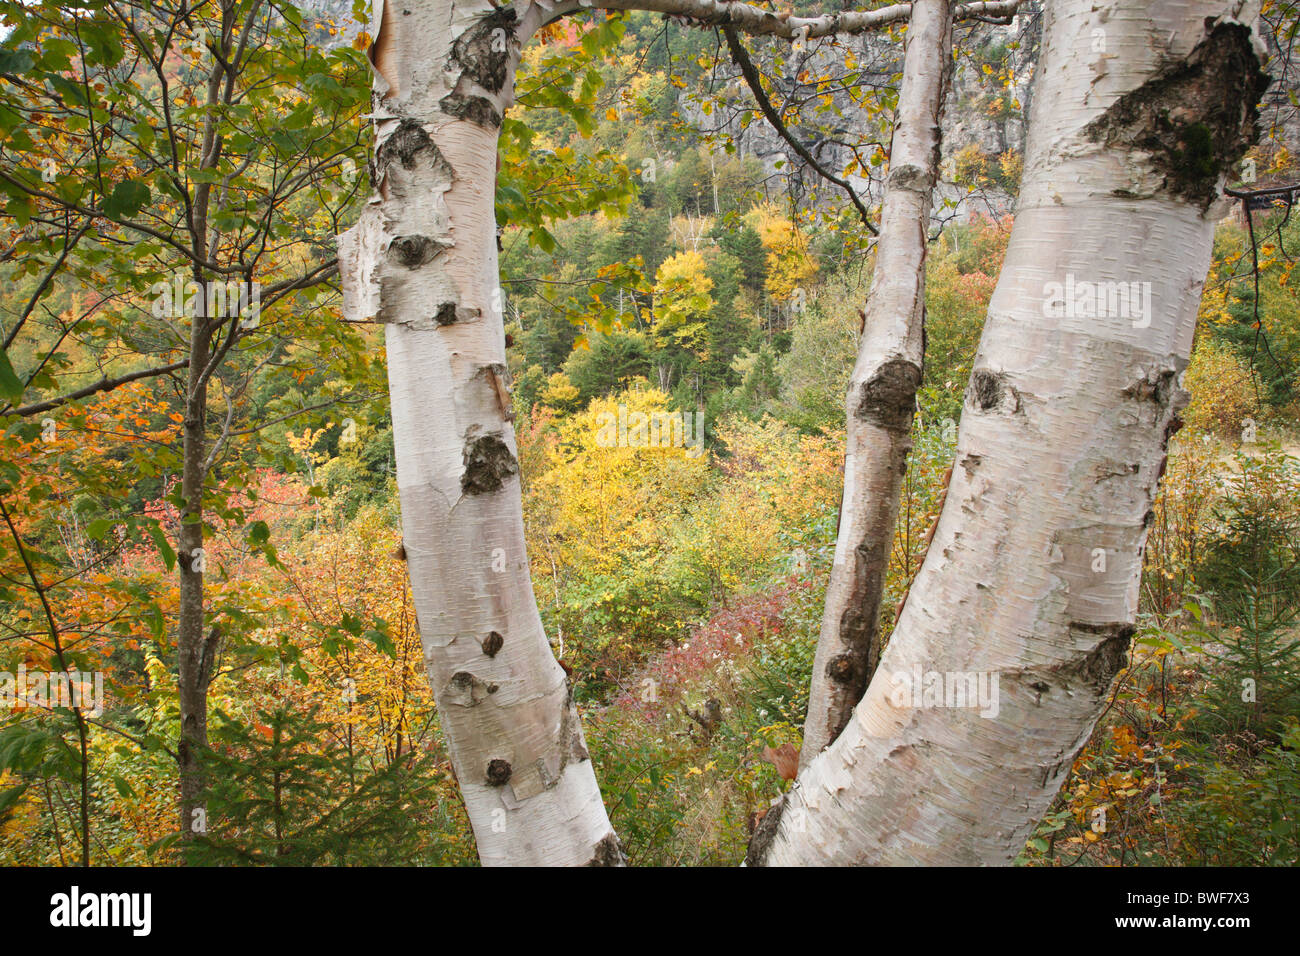 Crawford Notch State Park - Birch tree during the autumn months in the White Mountains, New Hampshire USA. Stock Photo